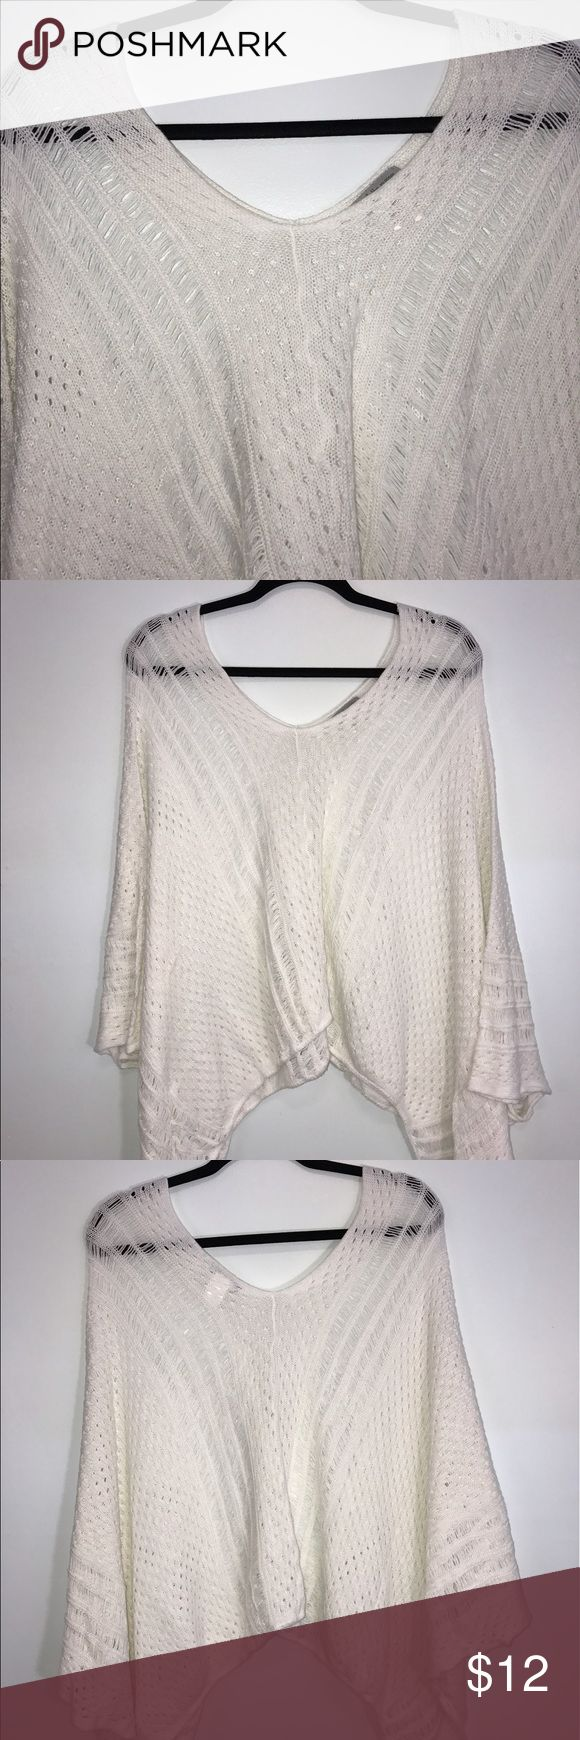 """Charlotte Russe Cream Knit Cape L/XL Charlotte Russe Cream knit cape/poncho. Lying flat, approximate measurements are: width 46""""; length 20"""". (K01-14)    🌼No holes, piling or stains. Items stored in smoke free, pet free, perfume free environment. No trades or modeling. Same or next day shipping.  Save by bundling. All offers should be submitted with the offer button. Charlotte Russe Sweaters Shrugs & Ponchos"""